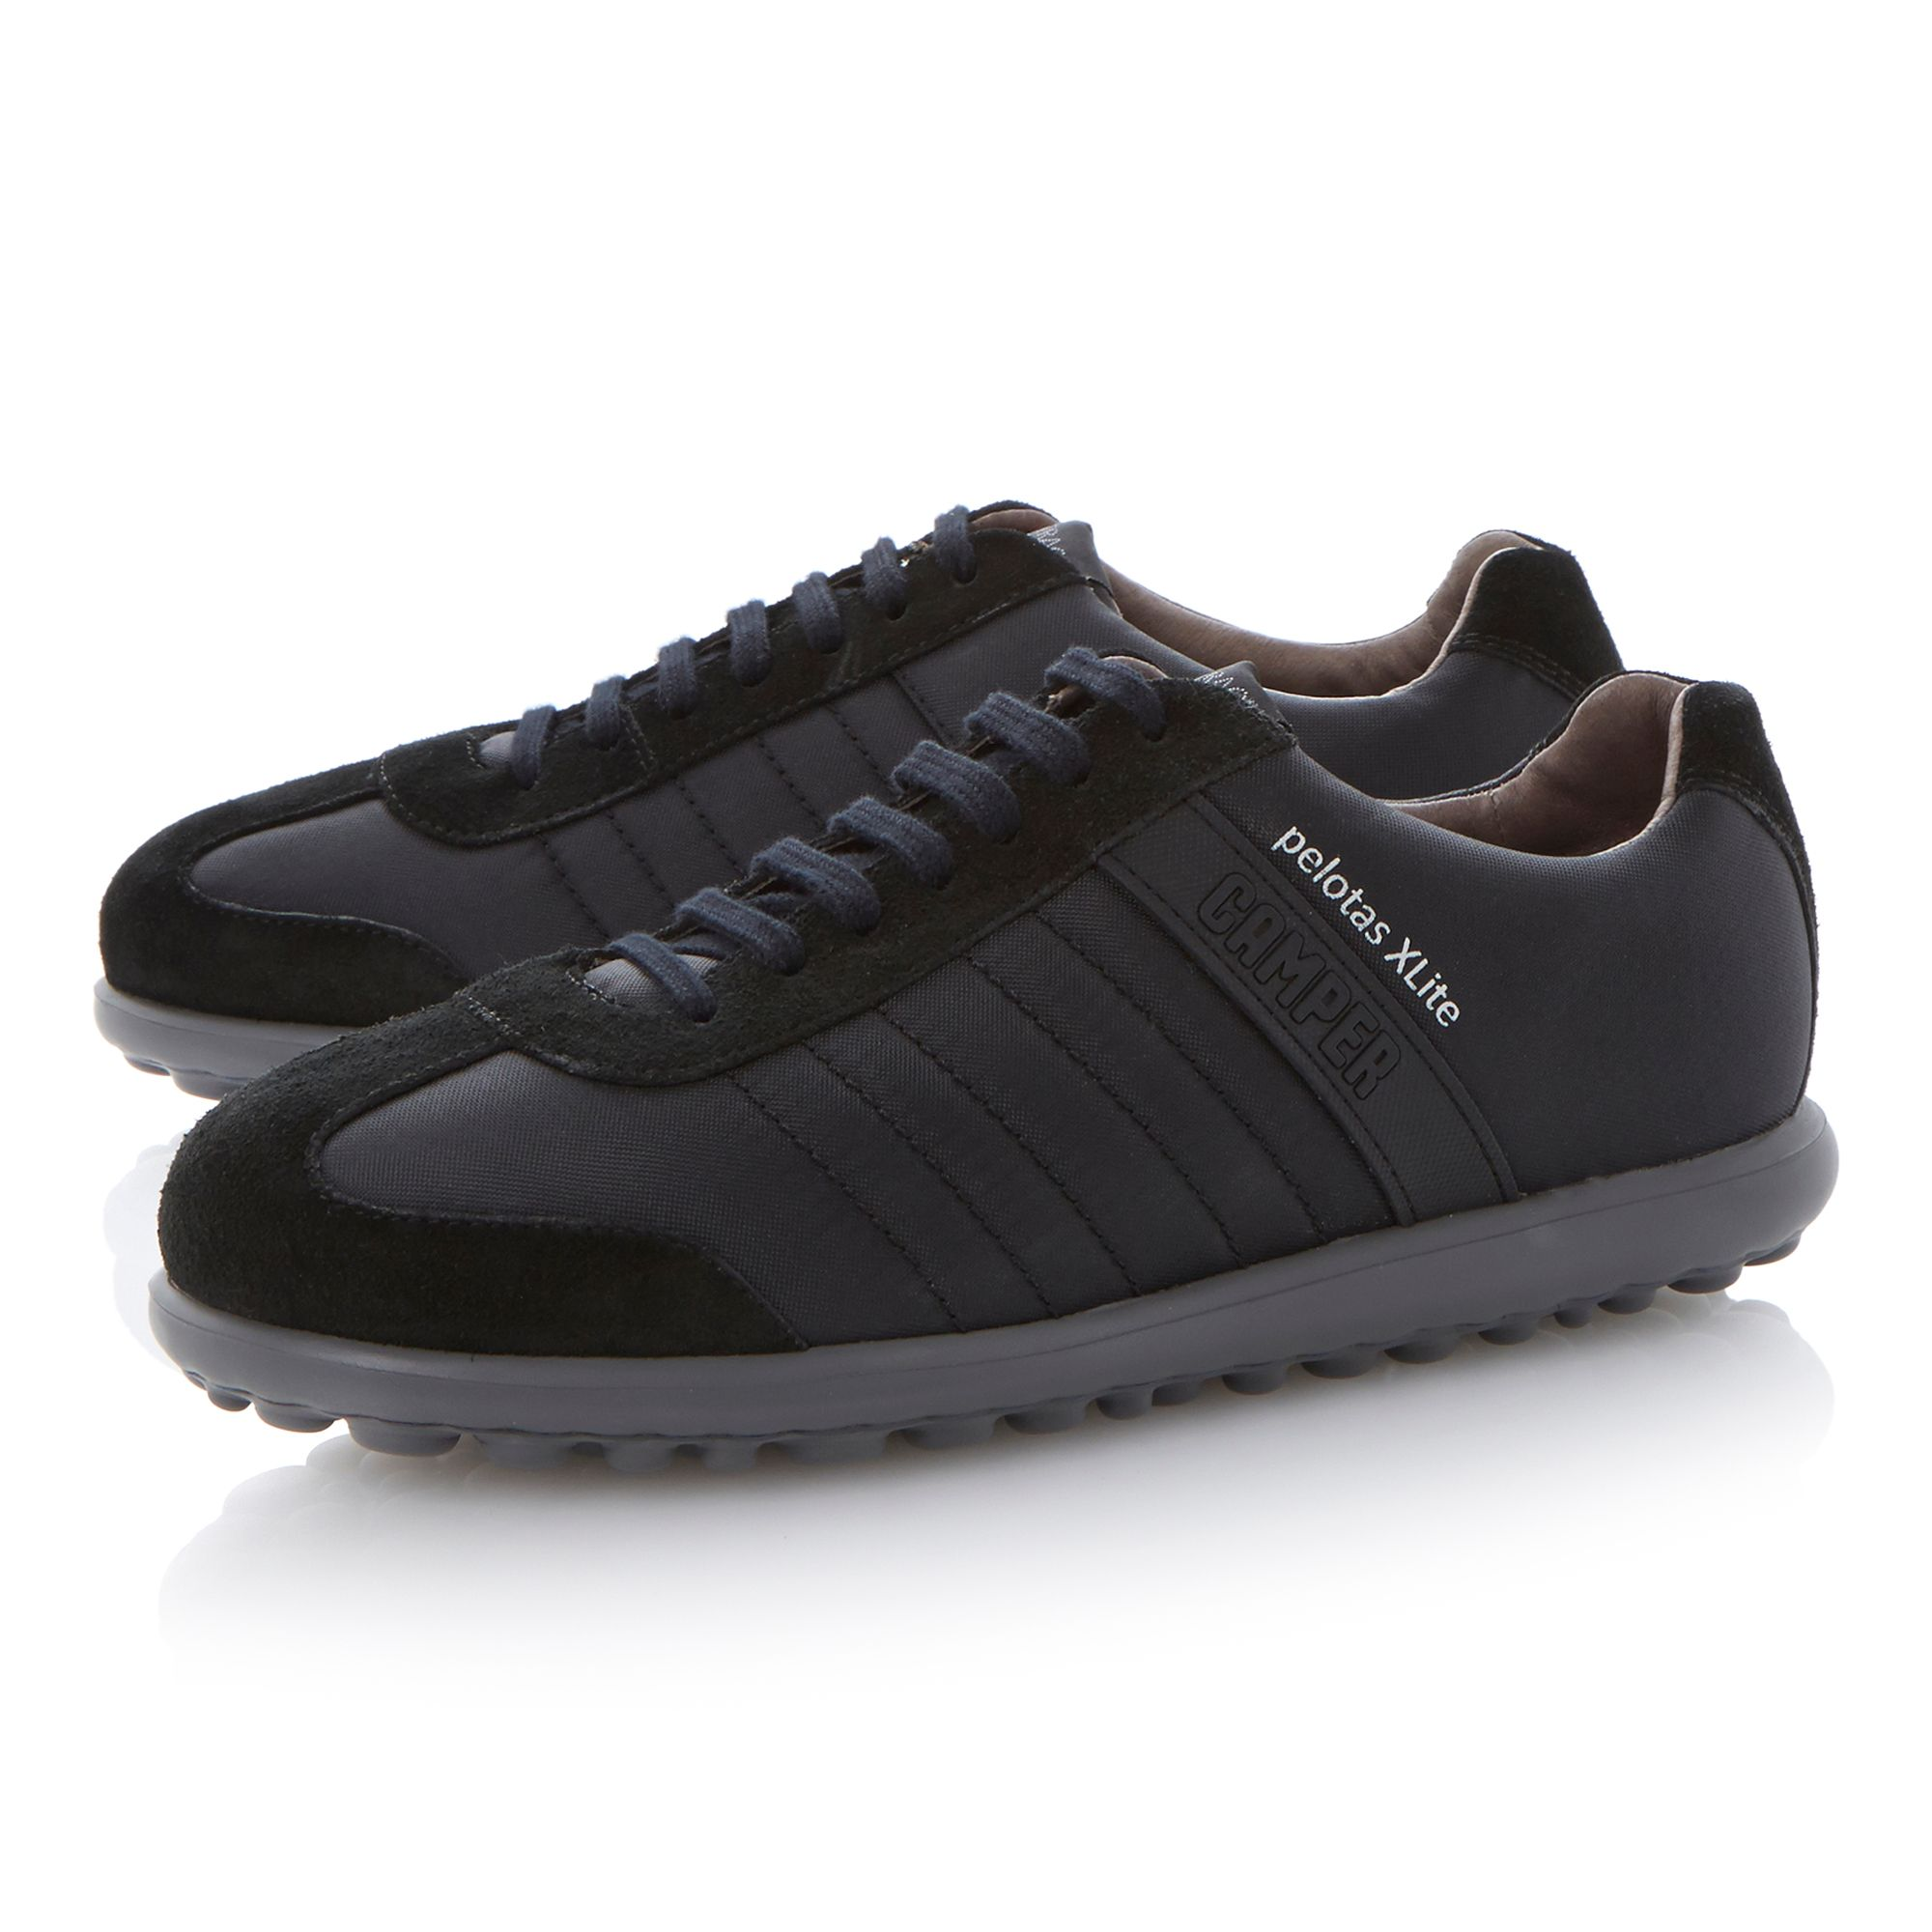 Pelotas xl lace up xlite trainers